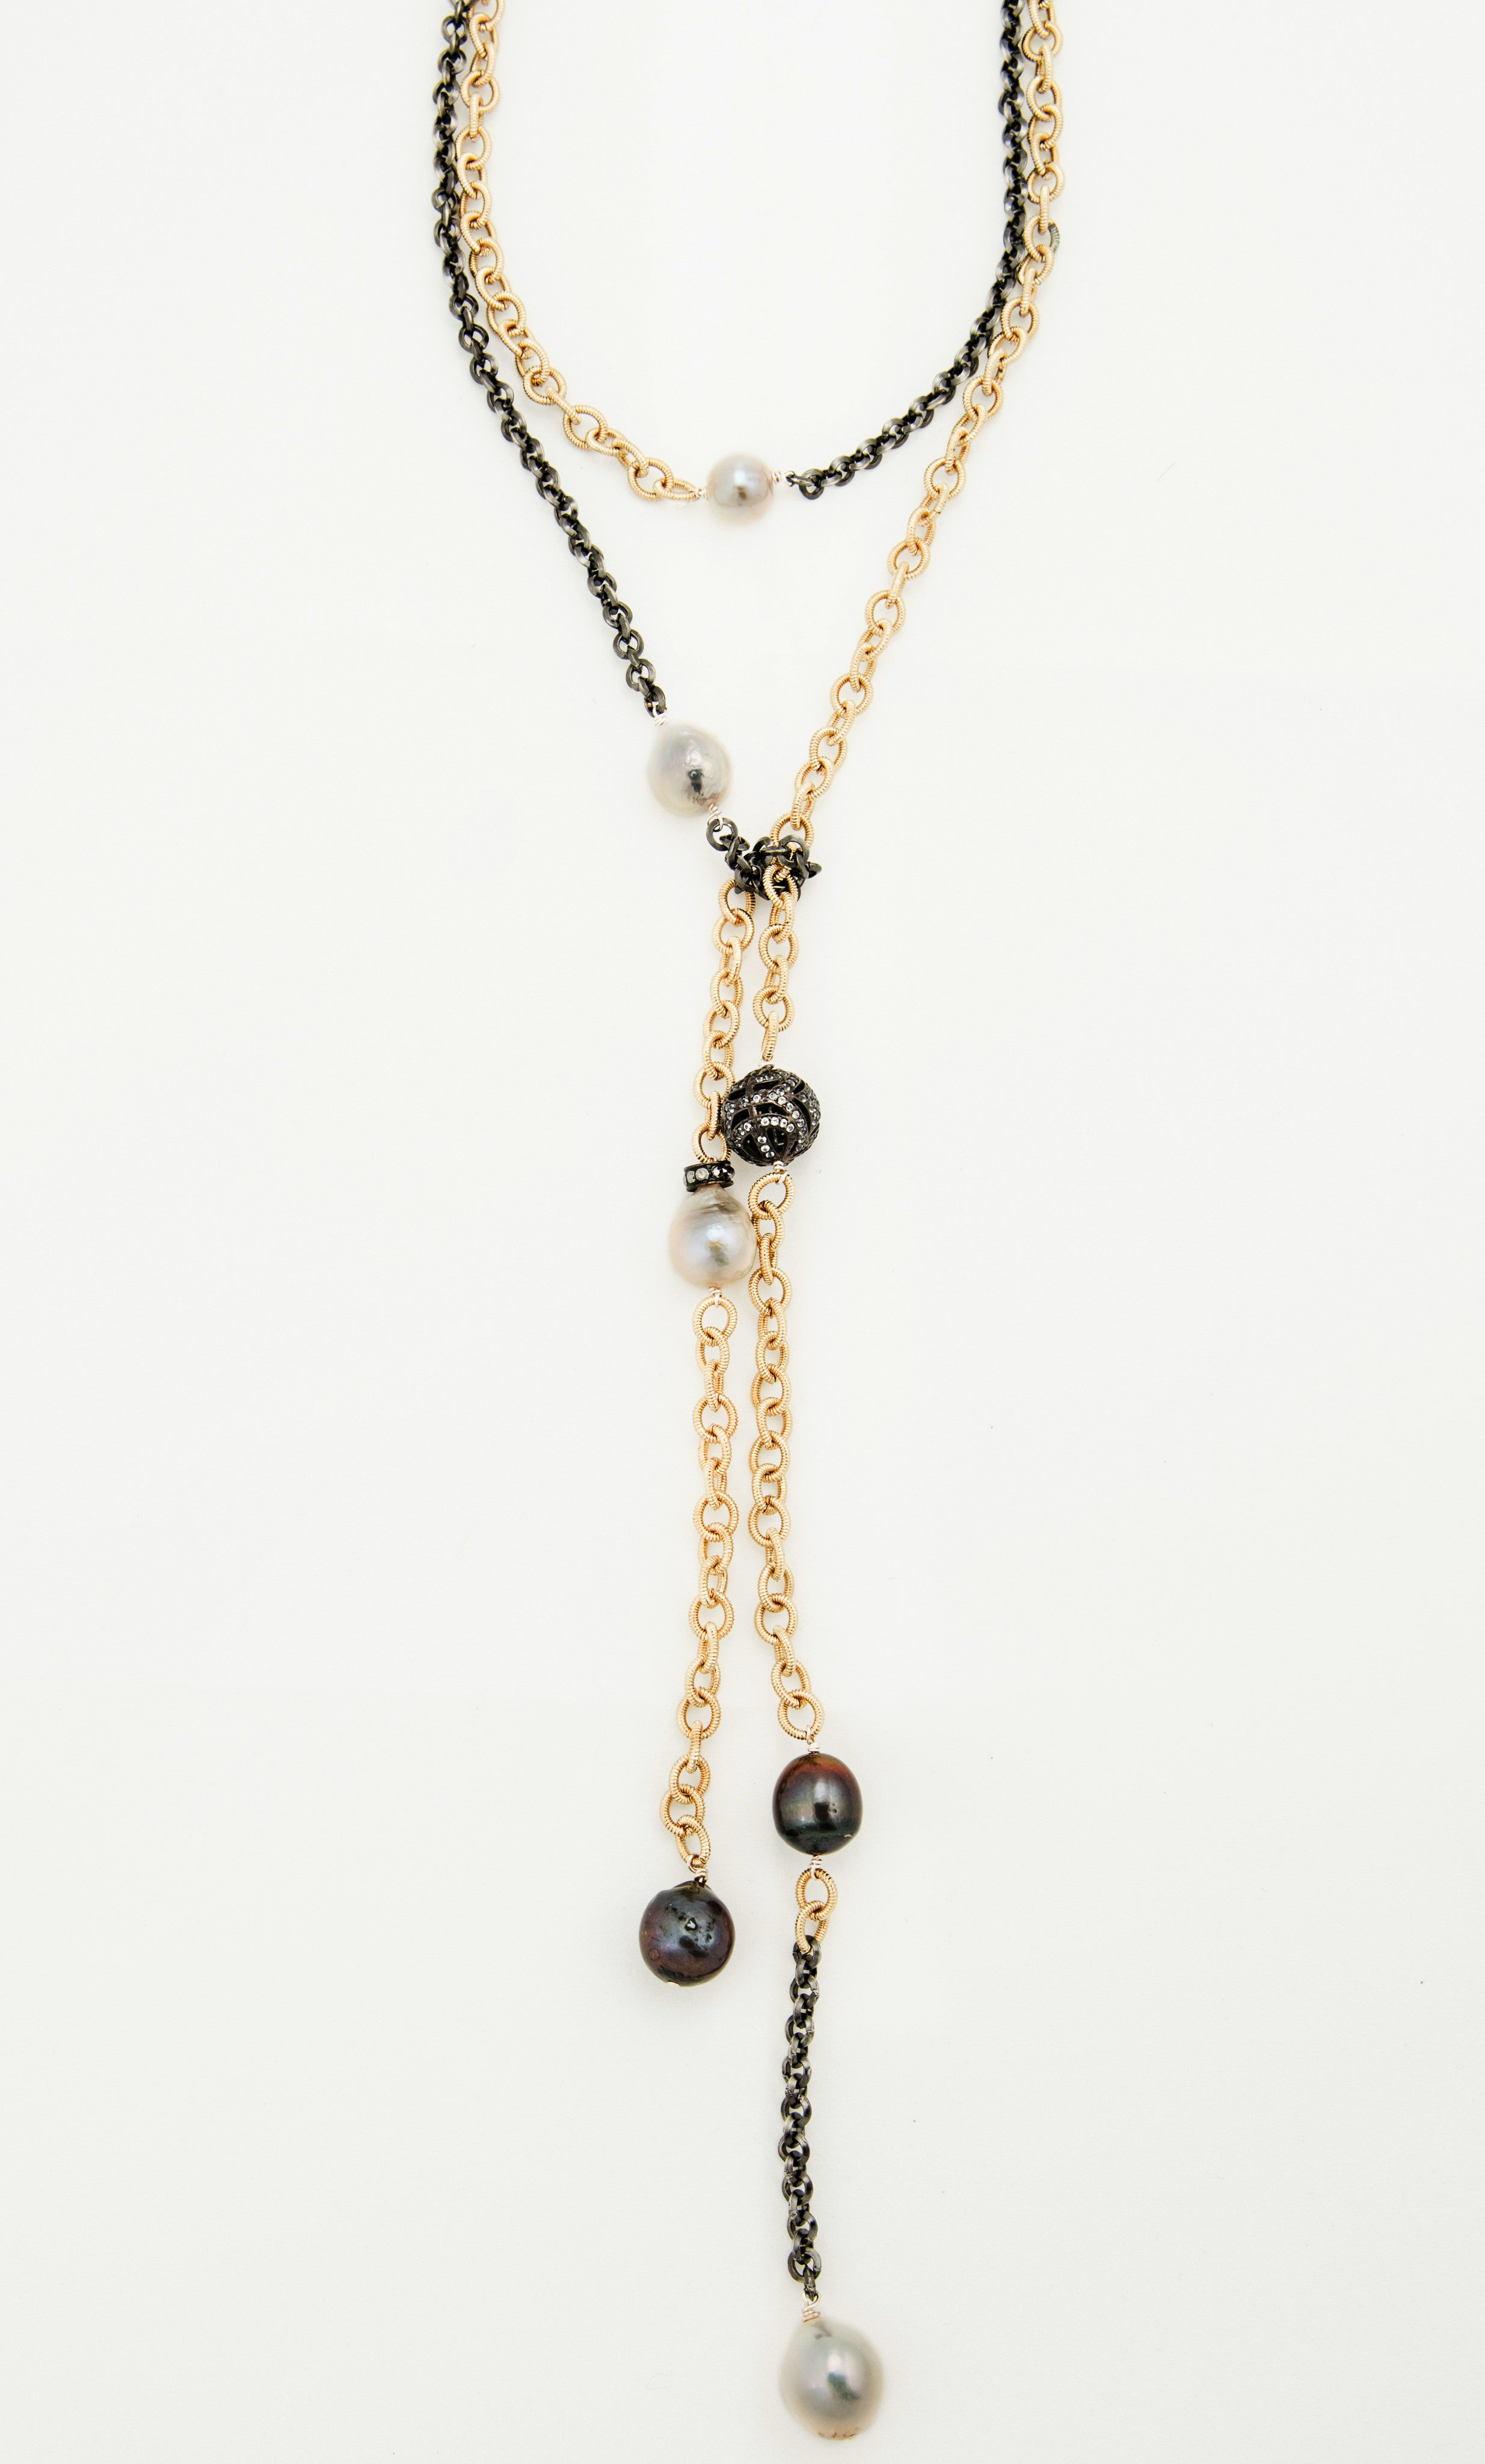 Mixed Metal Lariat with Black and White Fresh Water Pearls